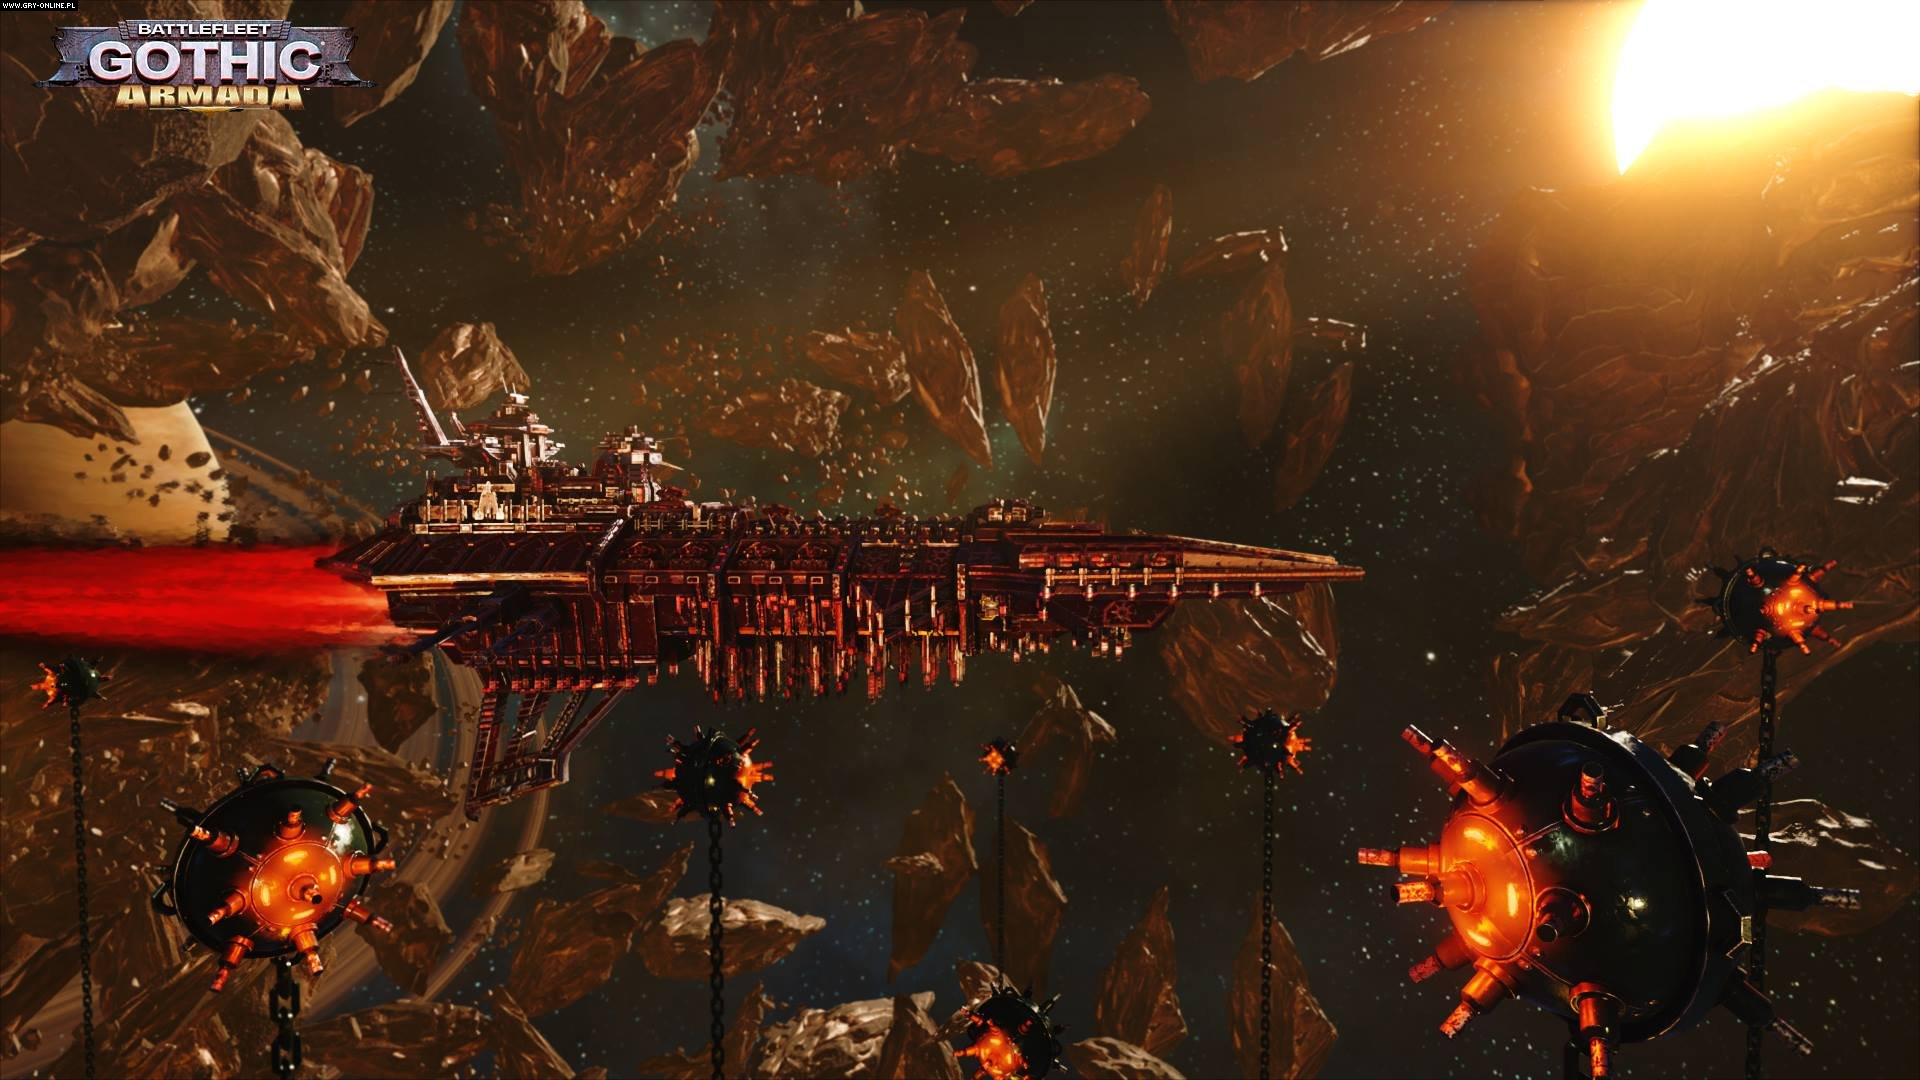 Battlefleet Gothic: Armada PC Gry Screen 15/21, Tindalos Interactive, Focus Home Interactive